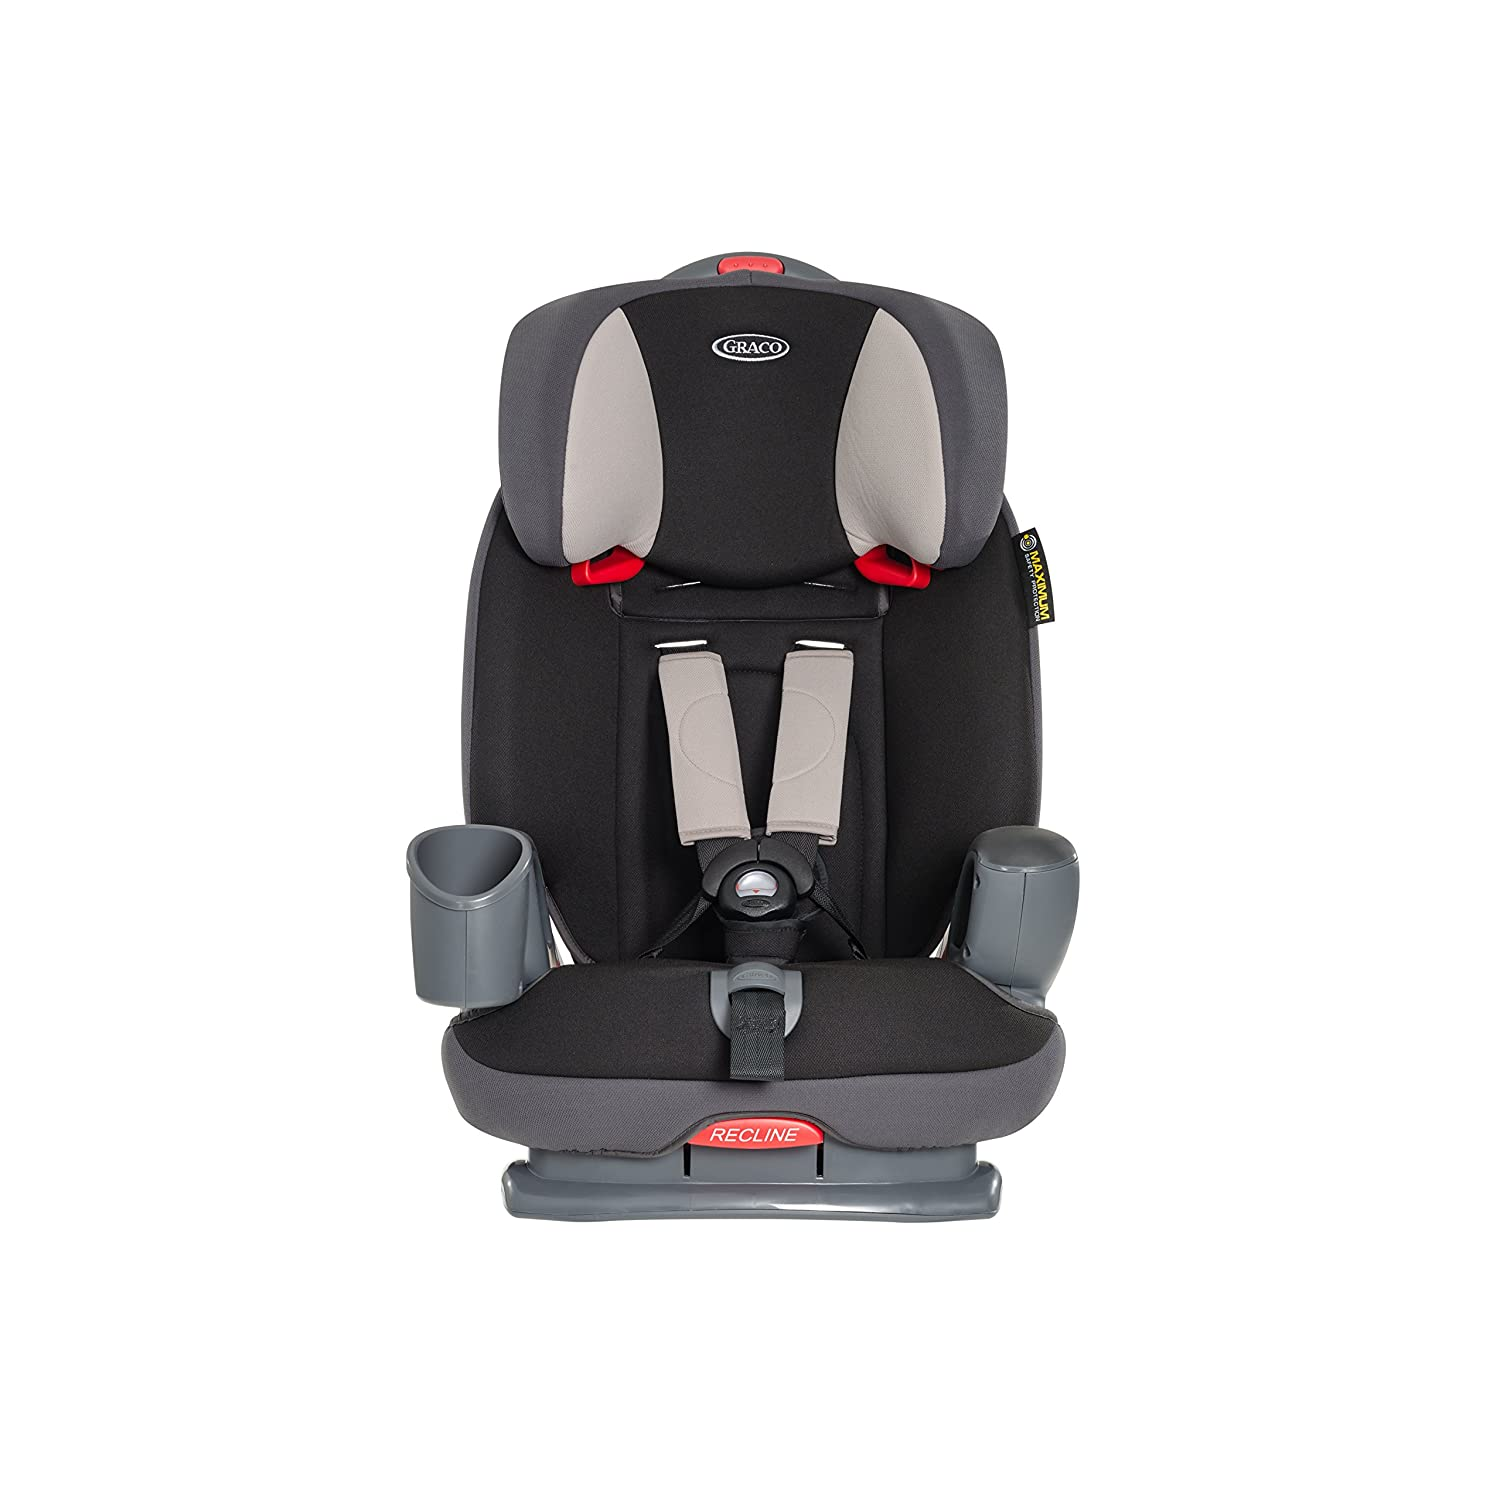 Graco Car Seat Prices South Africa